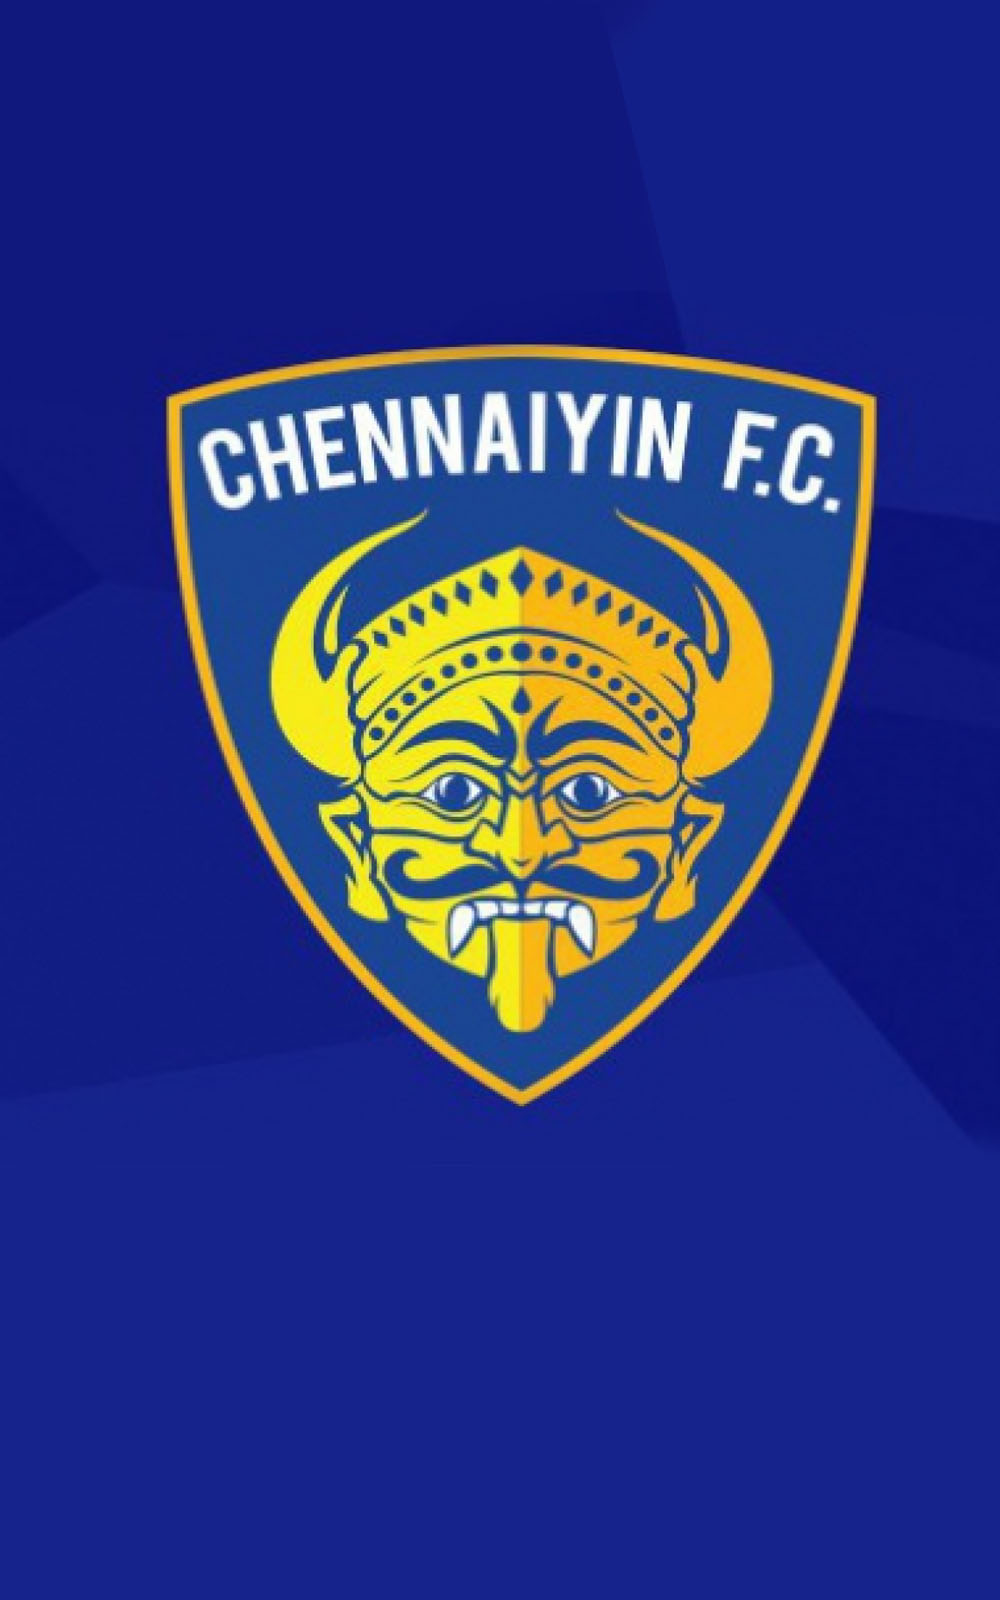 Download Wallpaper Chennaiyin Fc Logo 2095153 Hd Wallpaper